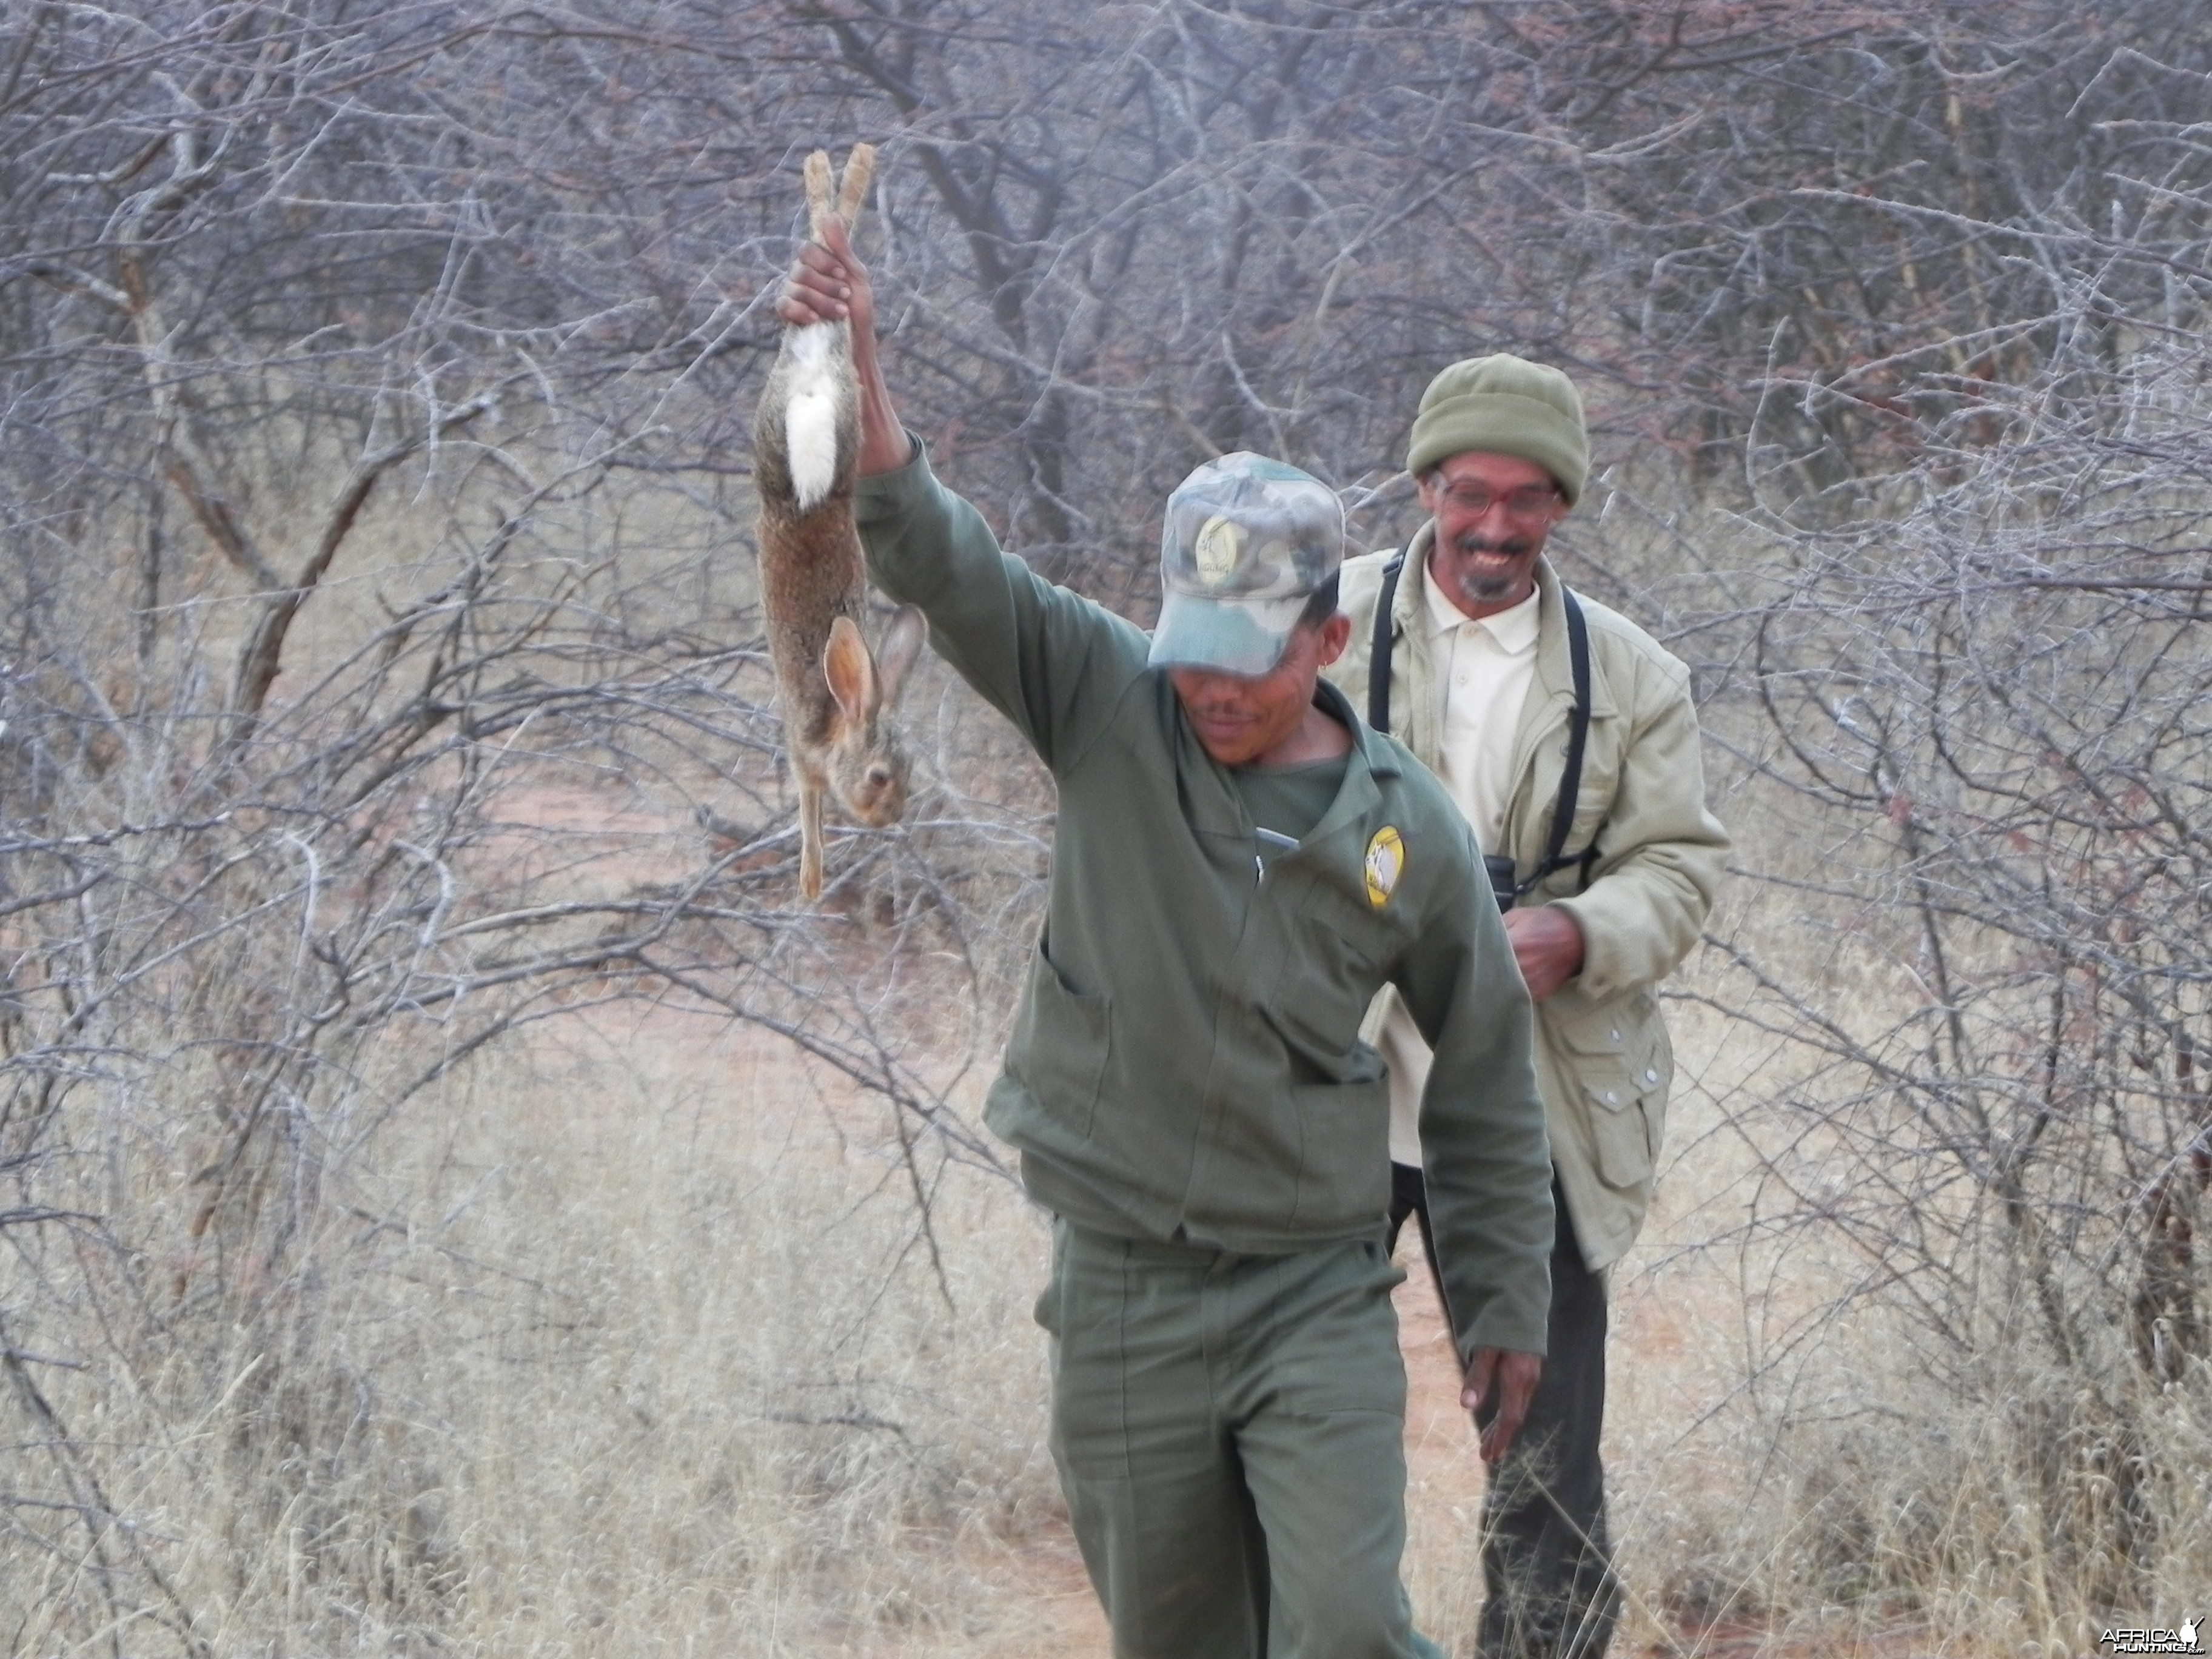 Hunting Hare in Namibia